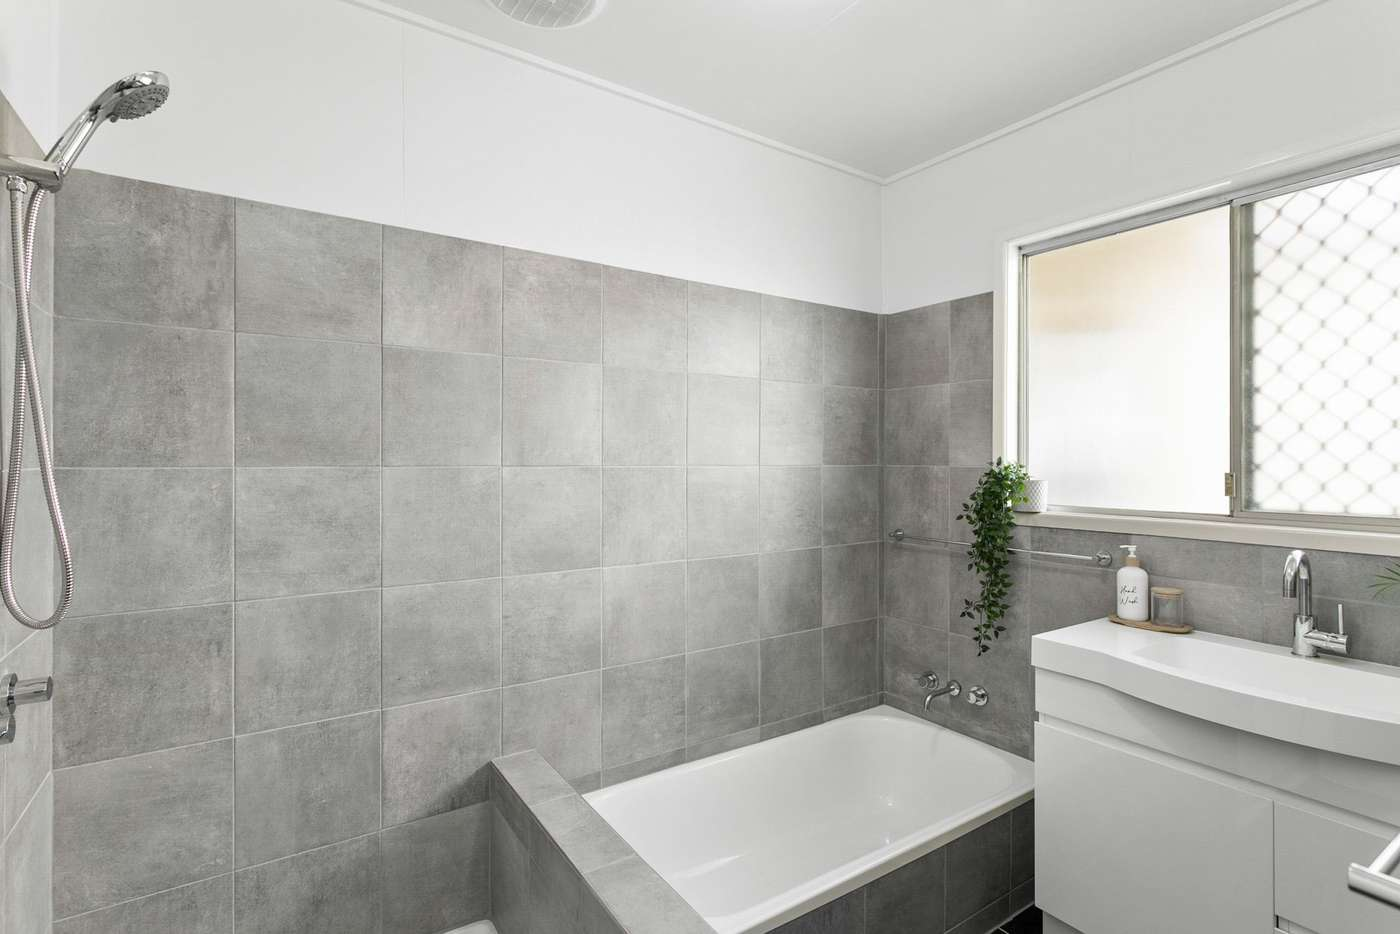 Sixth view of Homely house listing, 24 Southwell Street, Kippa-ring QLD 4021